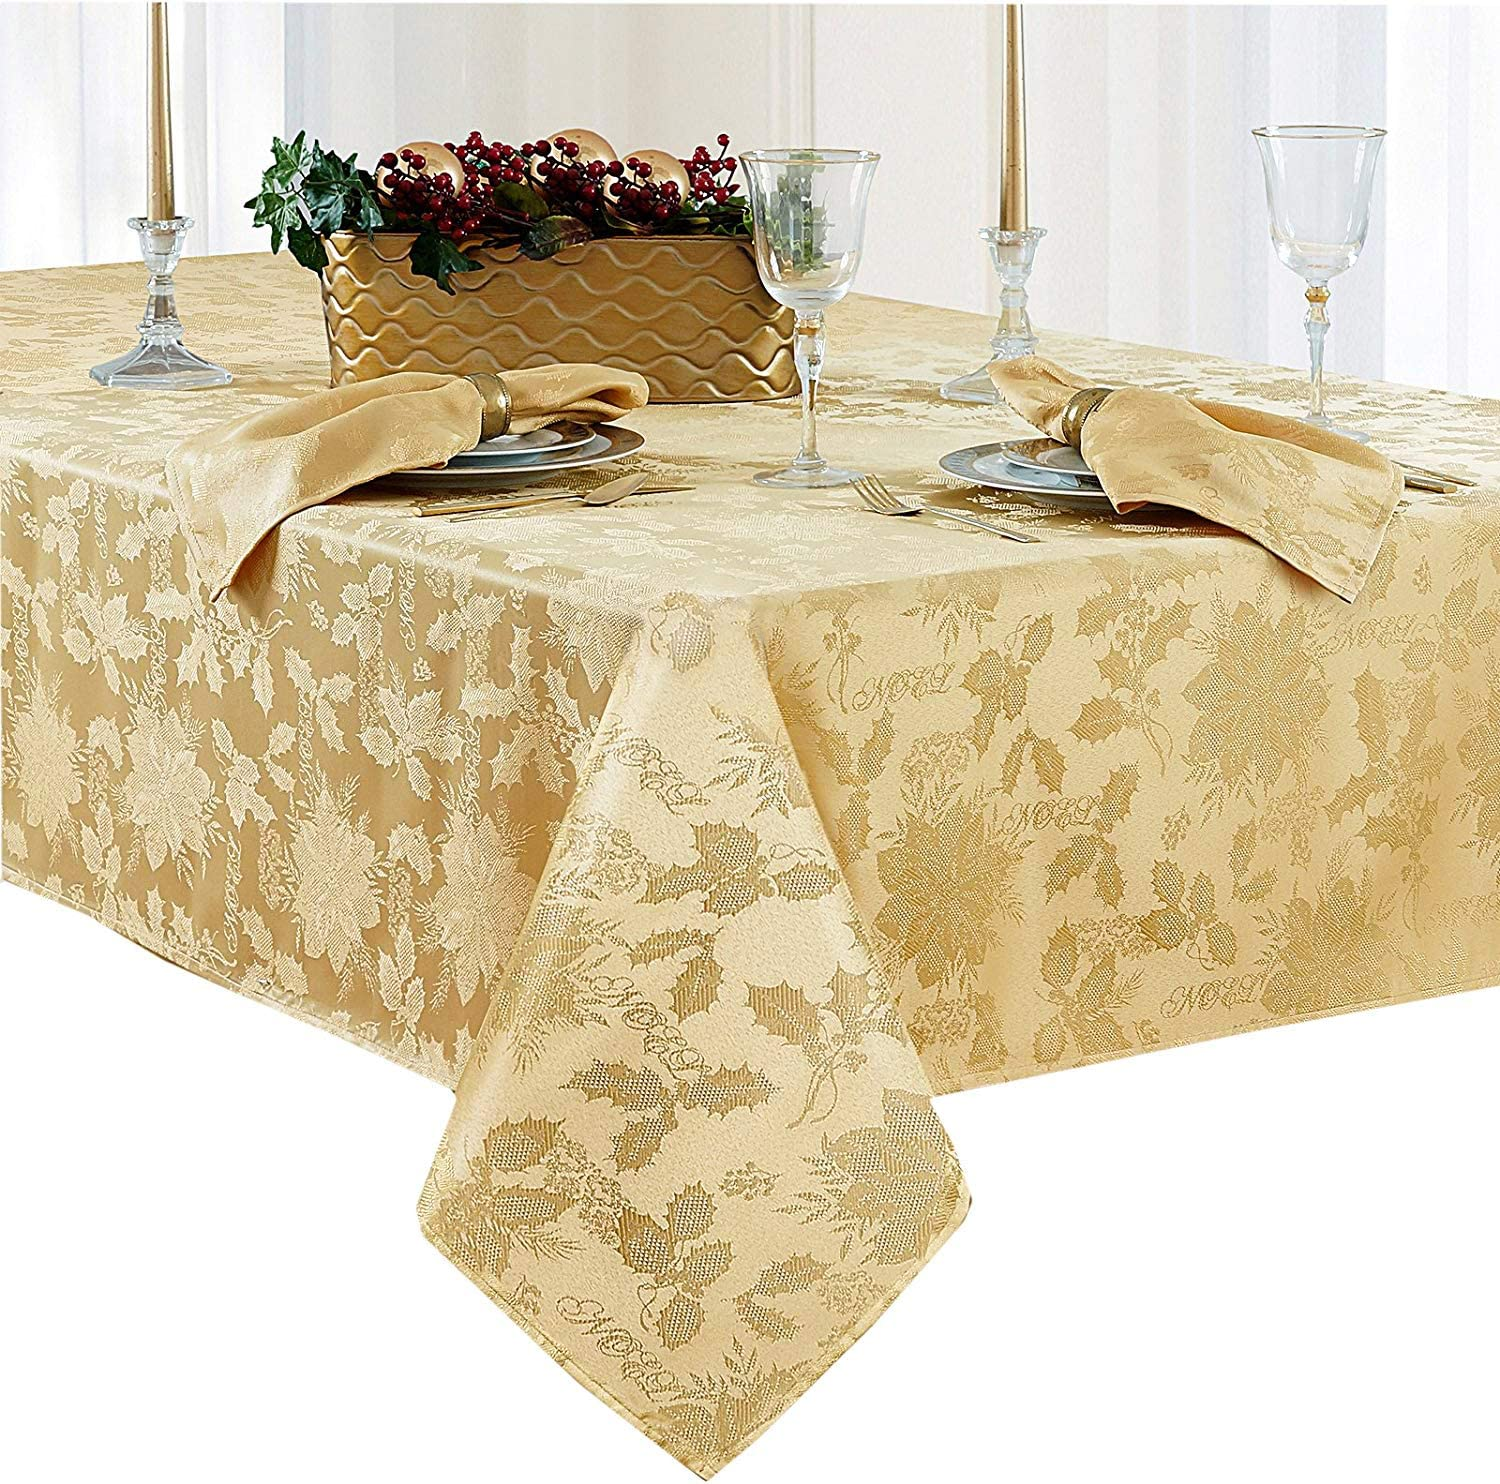 Newbridge Christmas Carol Damask No Iron Soil Release Holiday Tablecloth, 60 x 84 Inch Oblong, Gold